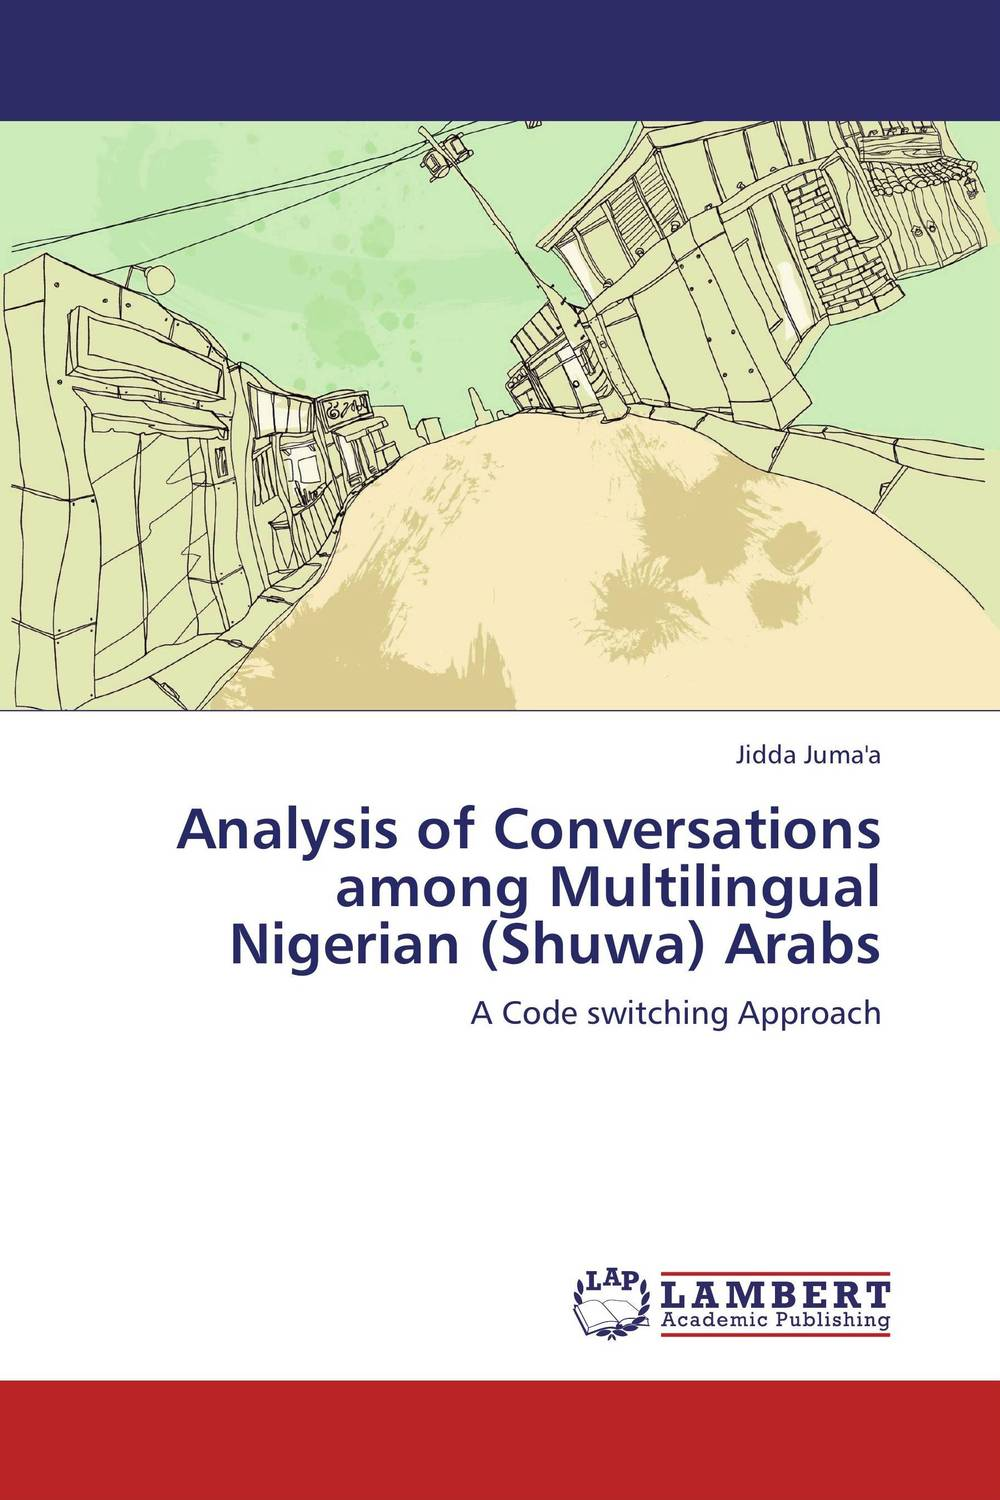 Analysis of Conversations among Multilingual Nigerian (Shuwa) Arabs linguistic variation in a multilingual setting